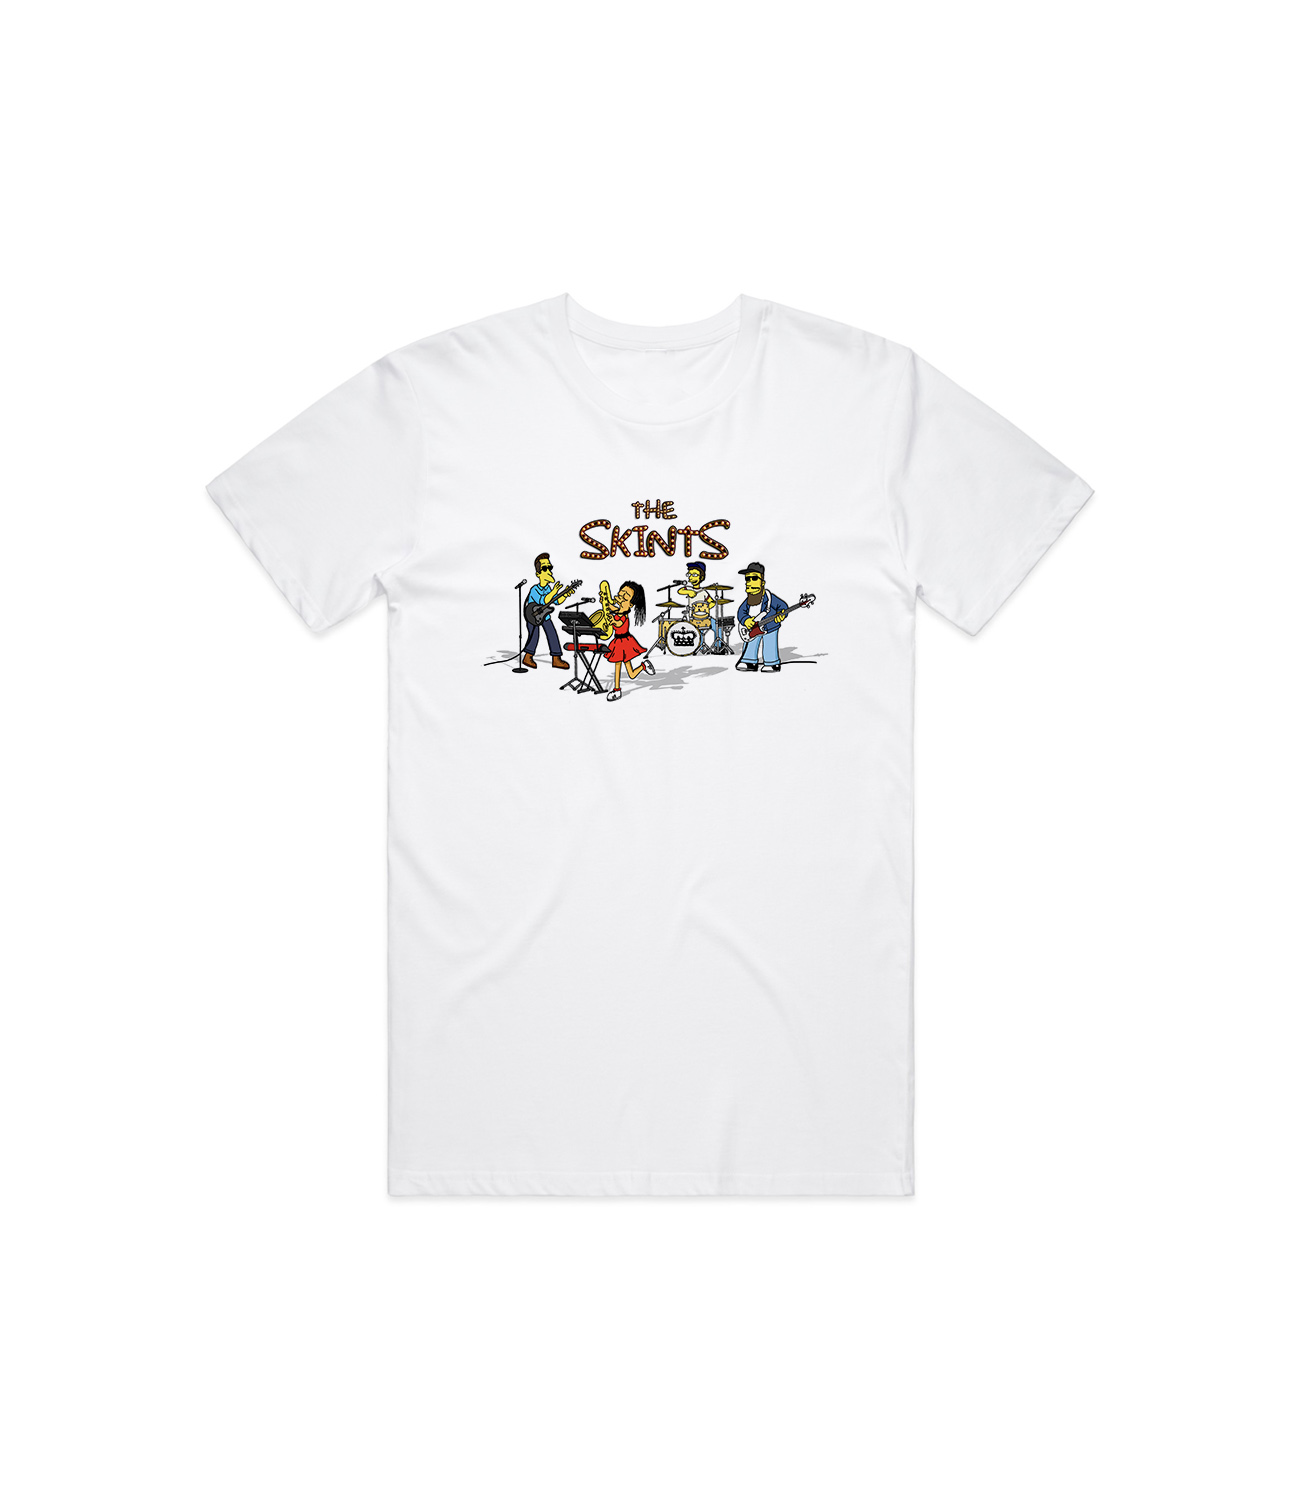 Springfield Tee White - The Skints